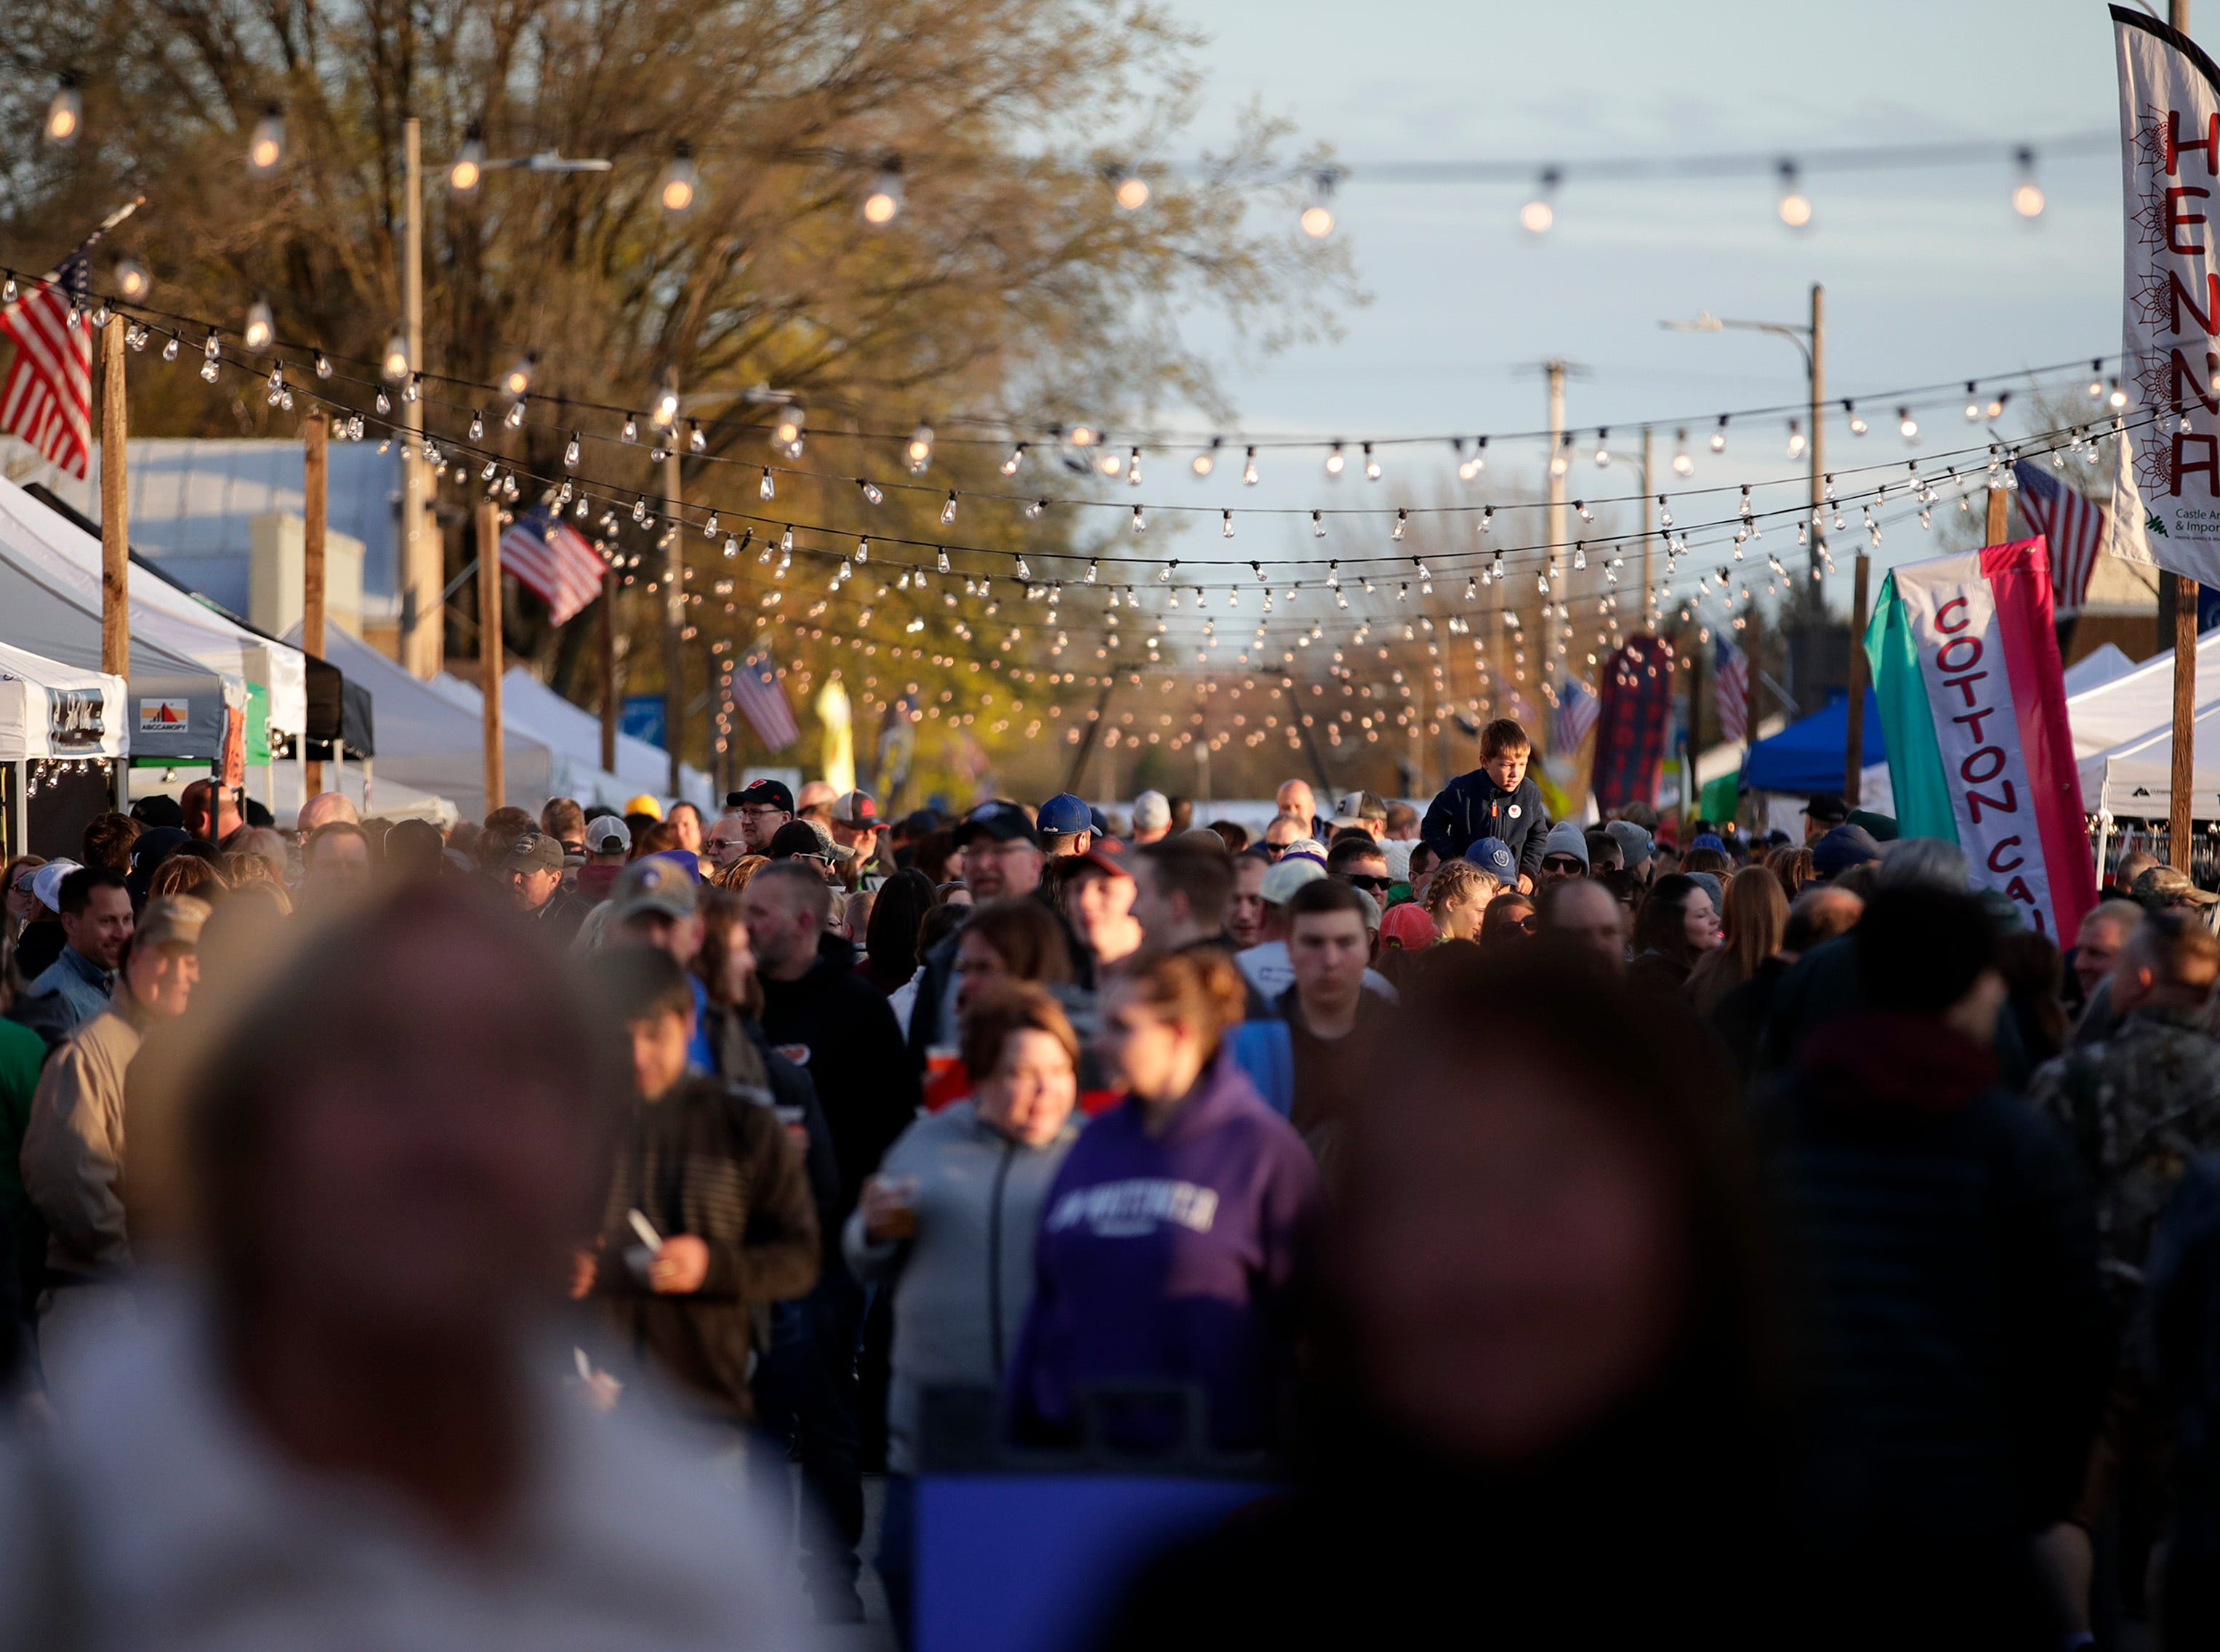 The first Bazaar After Dark of the year Saturday, May 11, 2019, in Brillion, Wis. Danny Damiani/USA TODAY NETWORK-Wisconsin